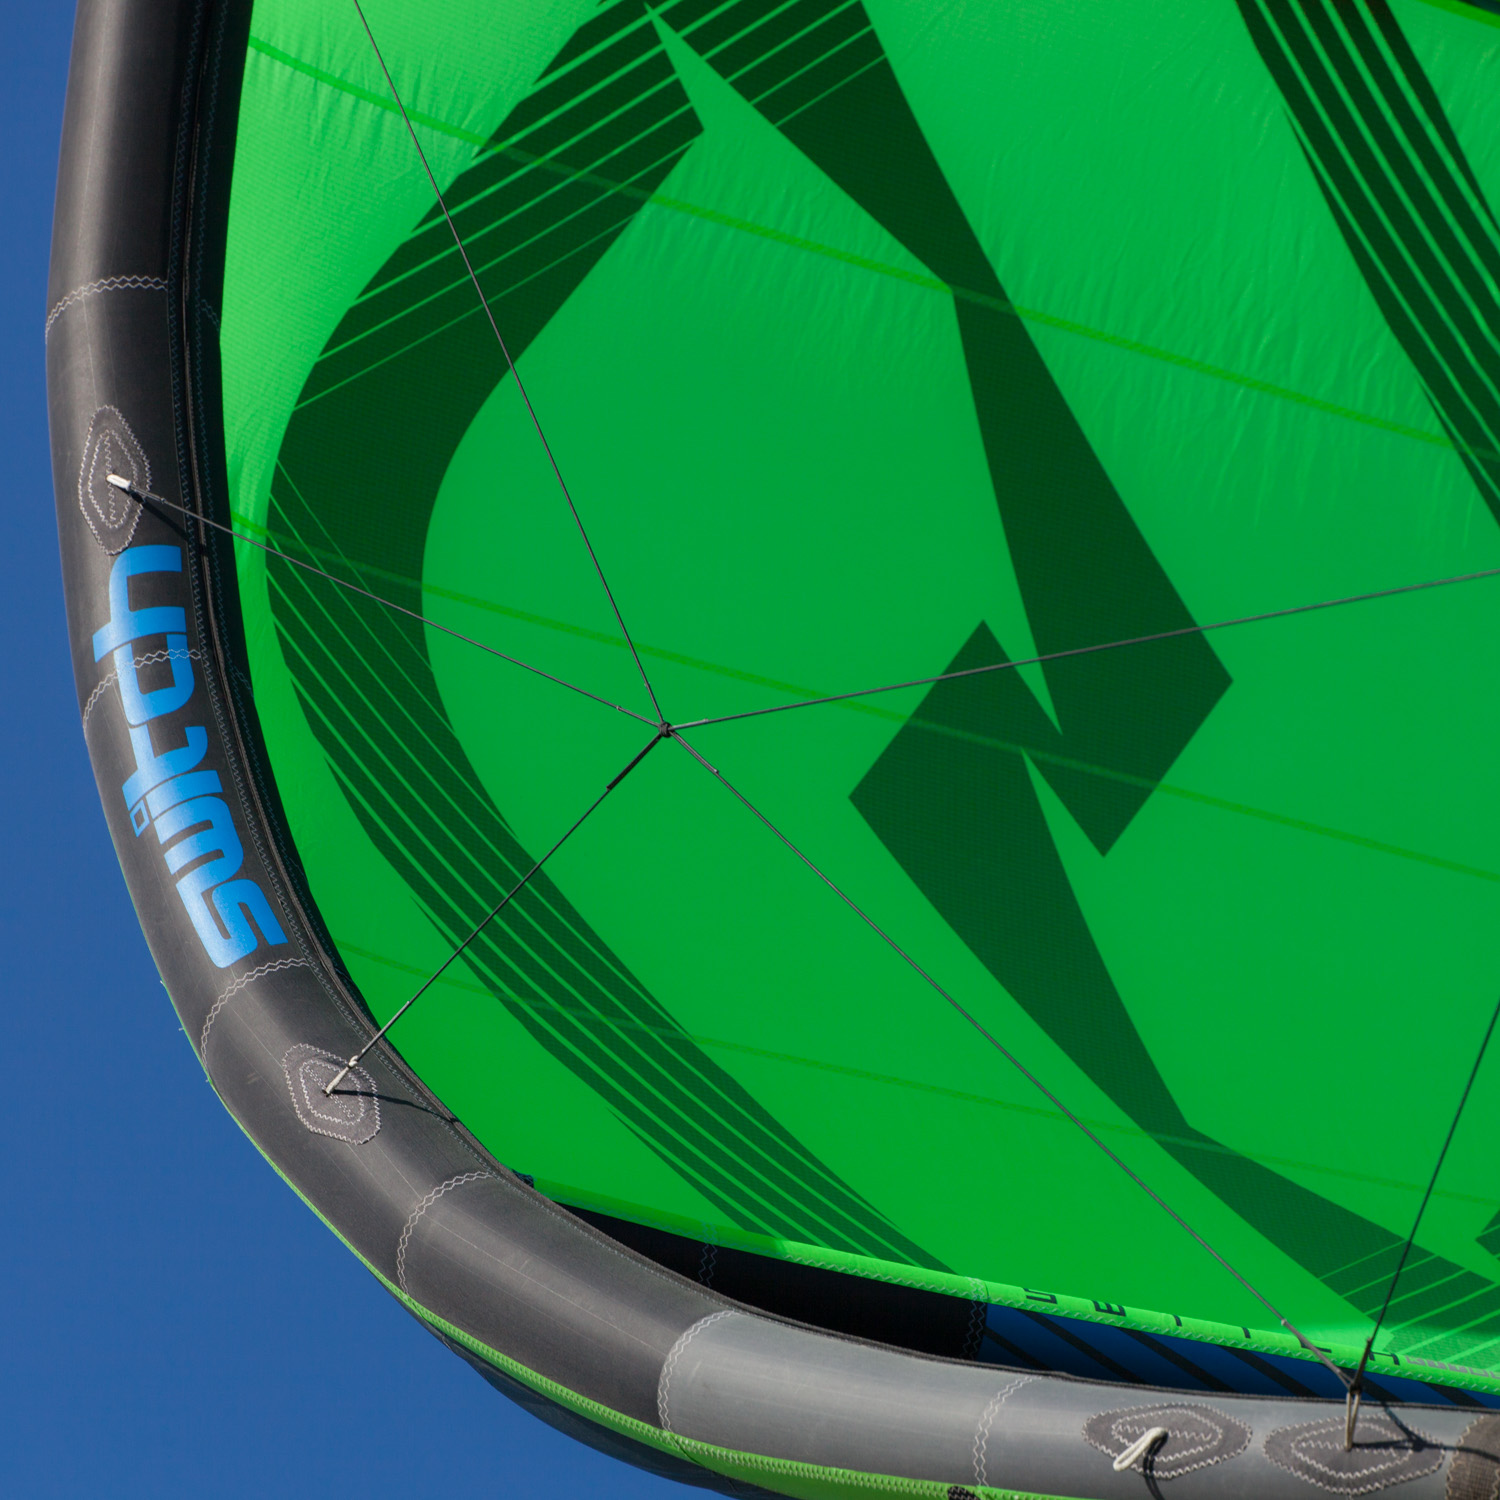 Nitro5 7032 - SWITCH KITEBOARDING LAUNCHES NEW INNOVATIVE 'SPIDER BRIDLE'